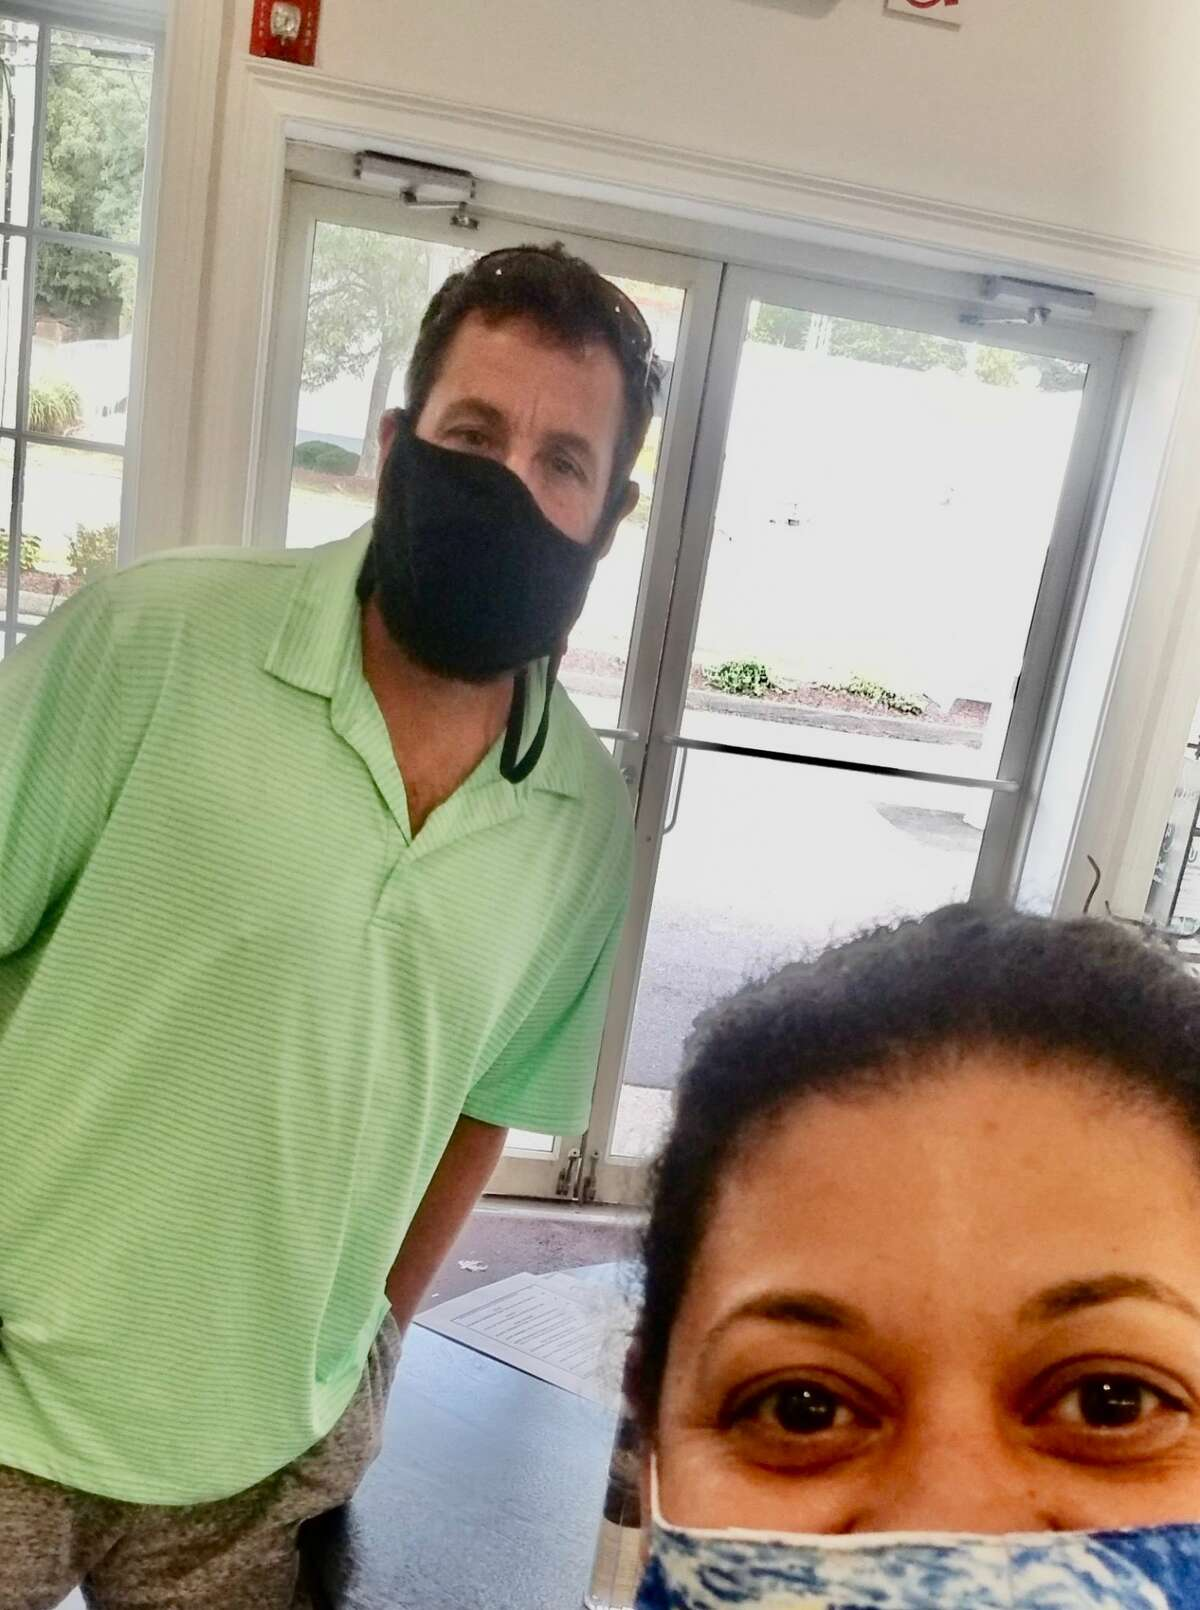 Adam Sandler stopped by Fred 06825 in Fairfield to pick up food on Sept. 28, 2020. Adam Sandler spotted in Fairfield Fred 06825, a deli in Fairfield, had an unexpected customer come in on Sept. 28 - actor Adam Sandler. Sandler was passing through with his parents on his way to Philadelphia and arrived at the deli around 2 p.m. to pick up food, according to owner Fred Kaskowitz. Read more.